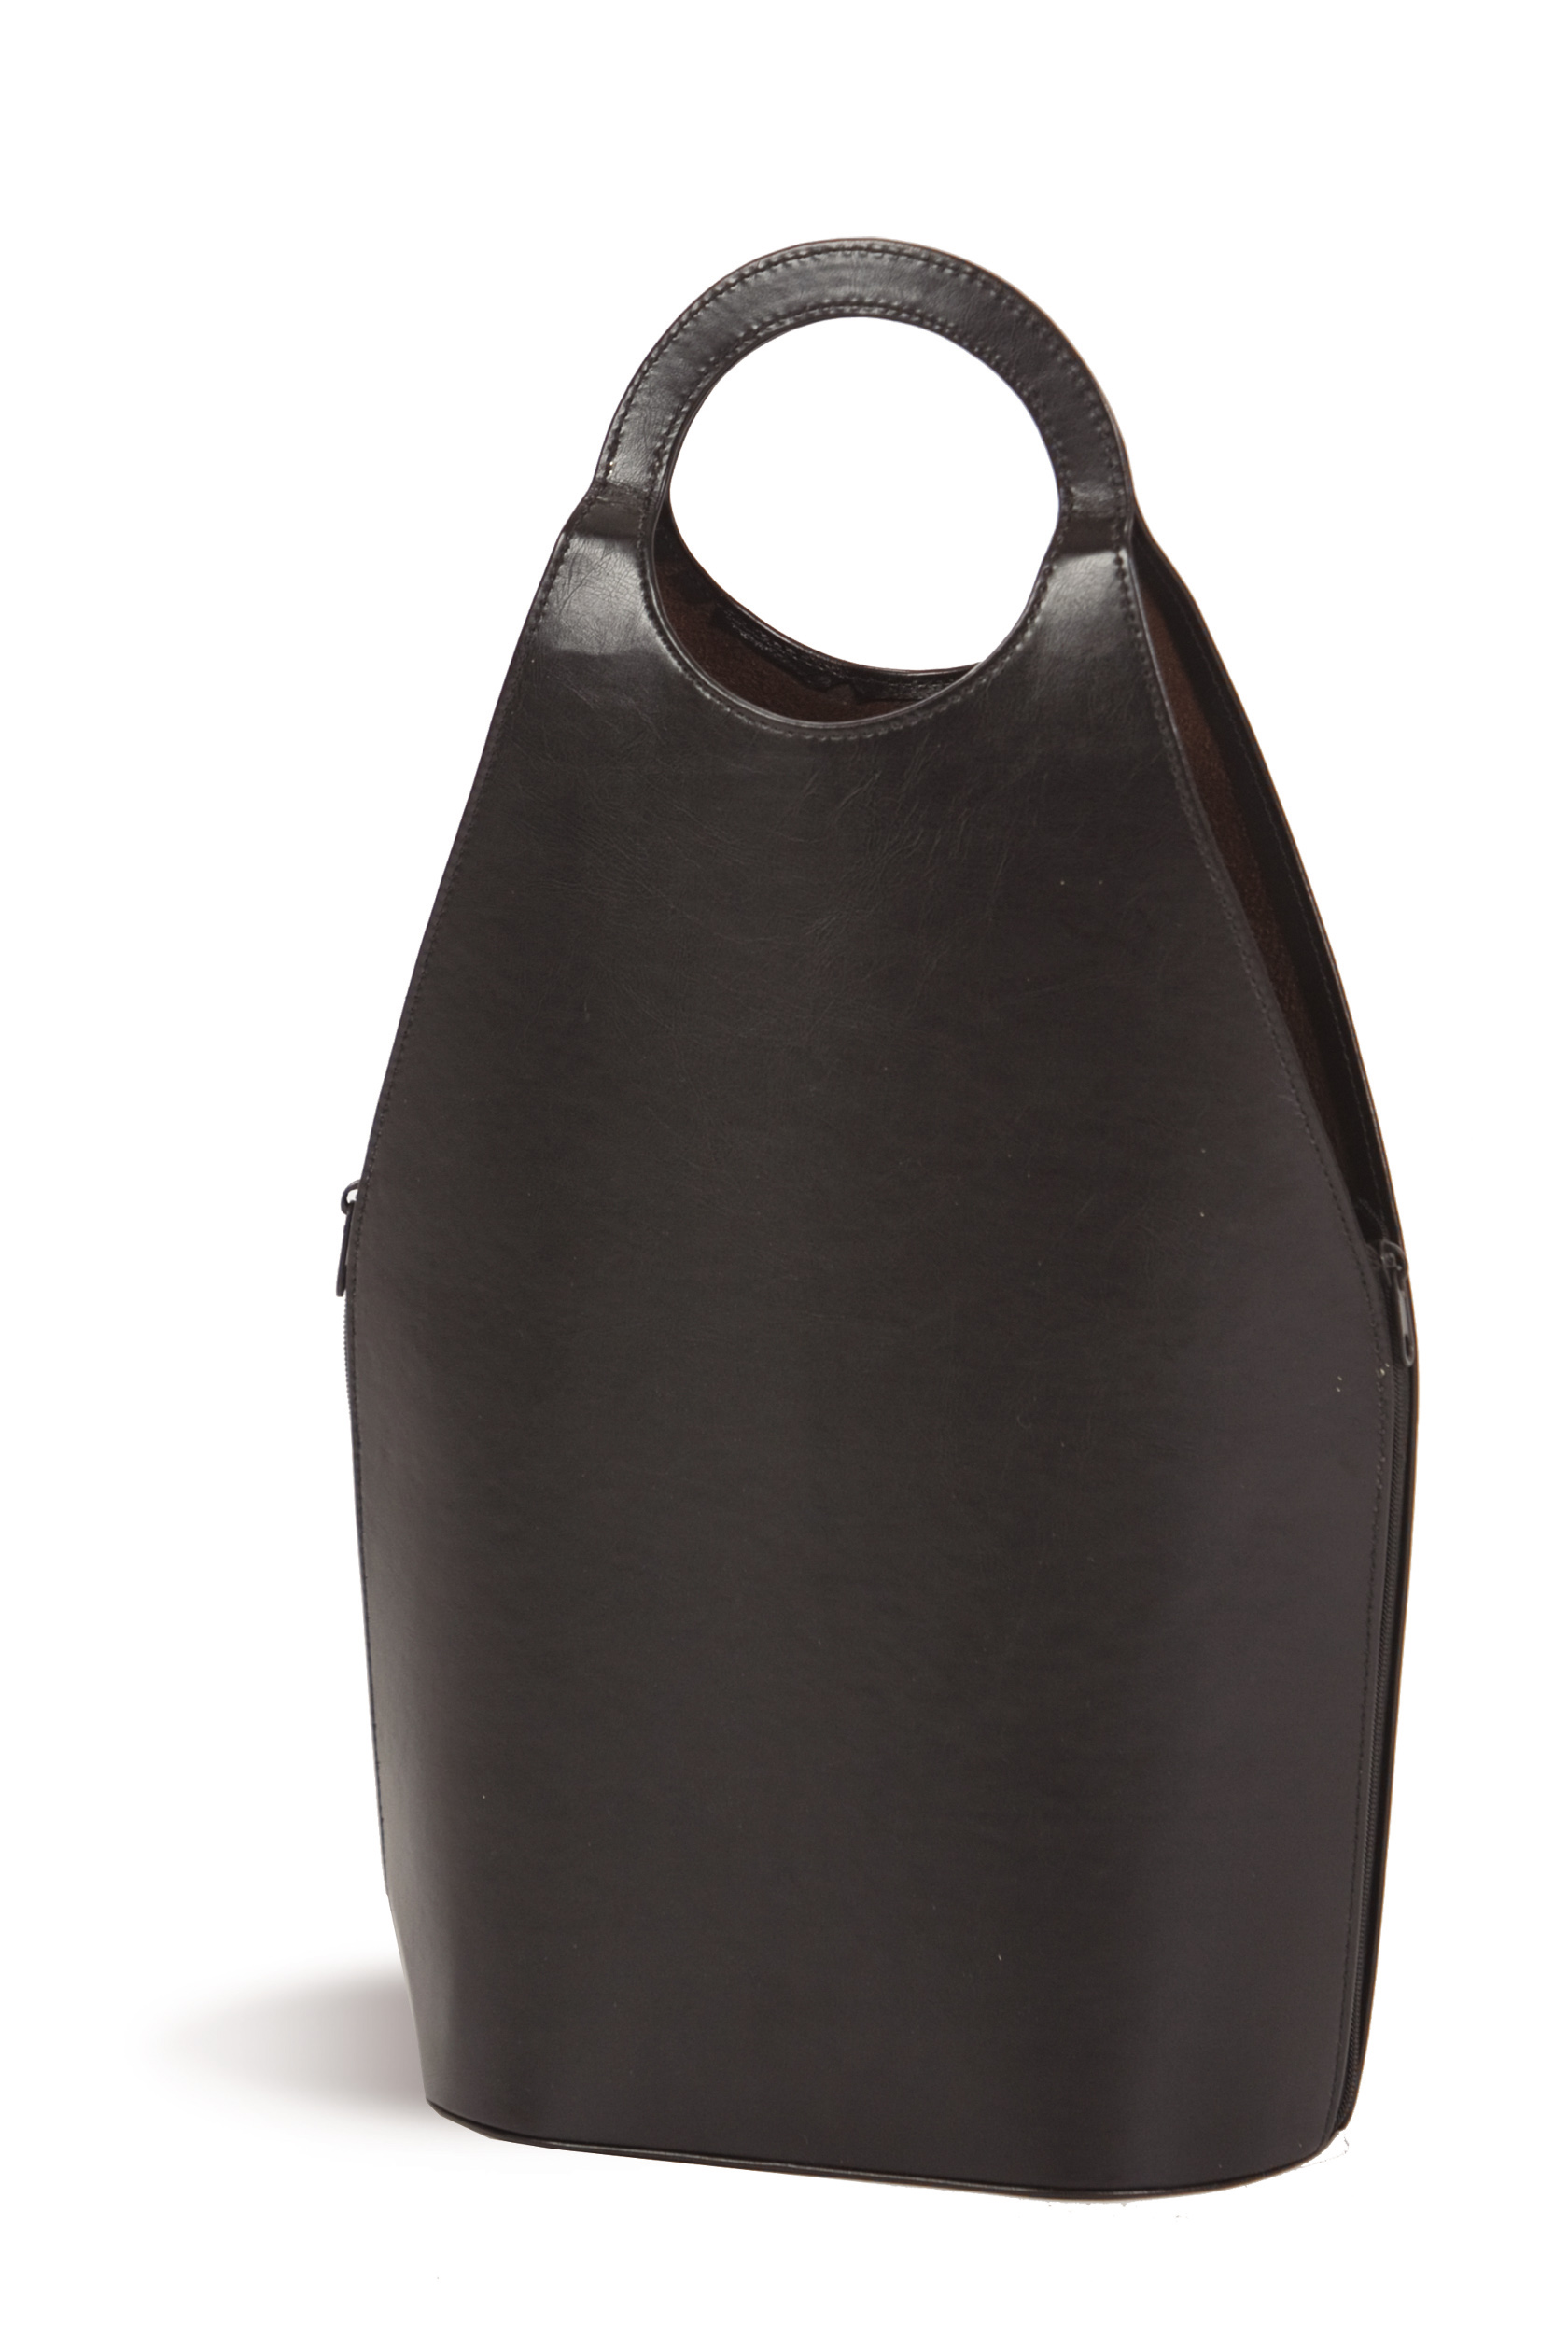 Soleil Wine Tote by Picnic Plus